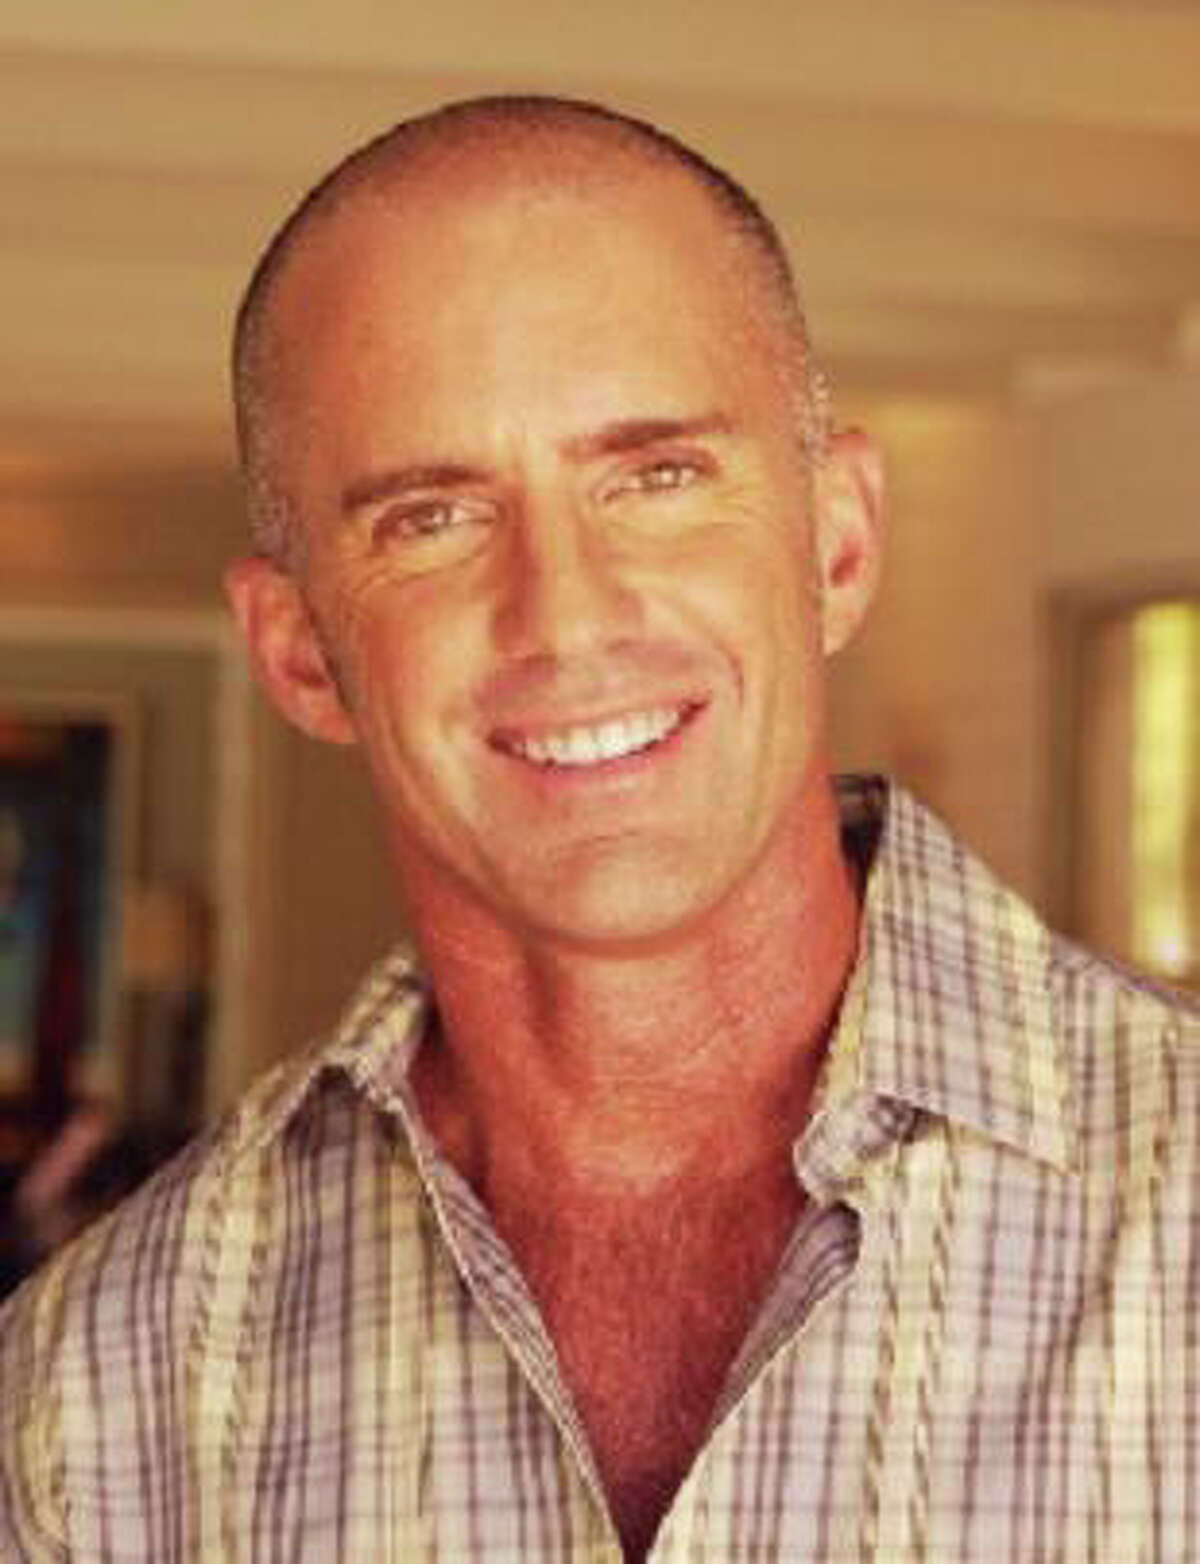 Pryority will host a three-day wellness event titled A Balancing Act. This event, which targets health conscious individuals of all ages, will run from Thursday, Oct. 20, to Saturday, Oct. 22. Showcasing fitness and wellness expert Scott Cole, all classes will be held at The Outback in New Canaan.